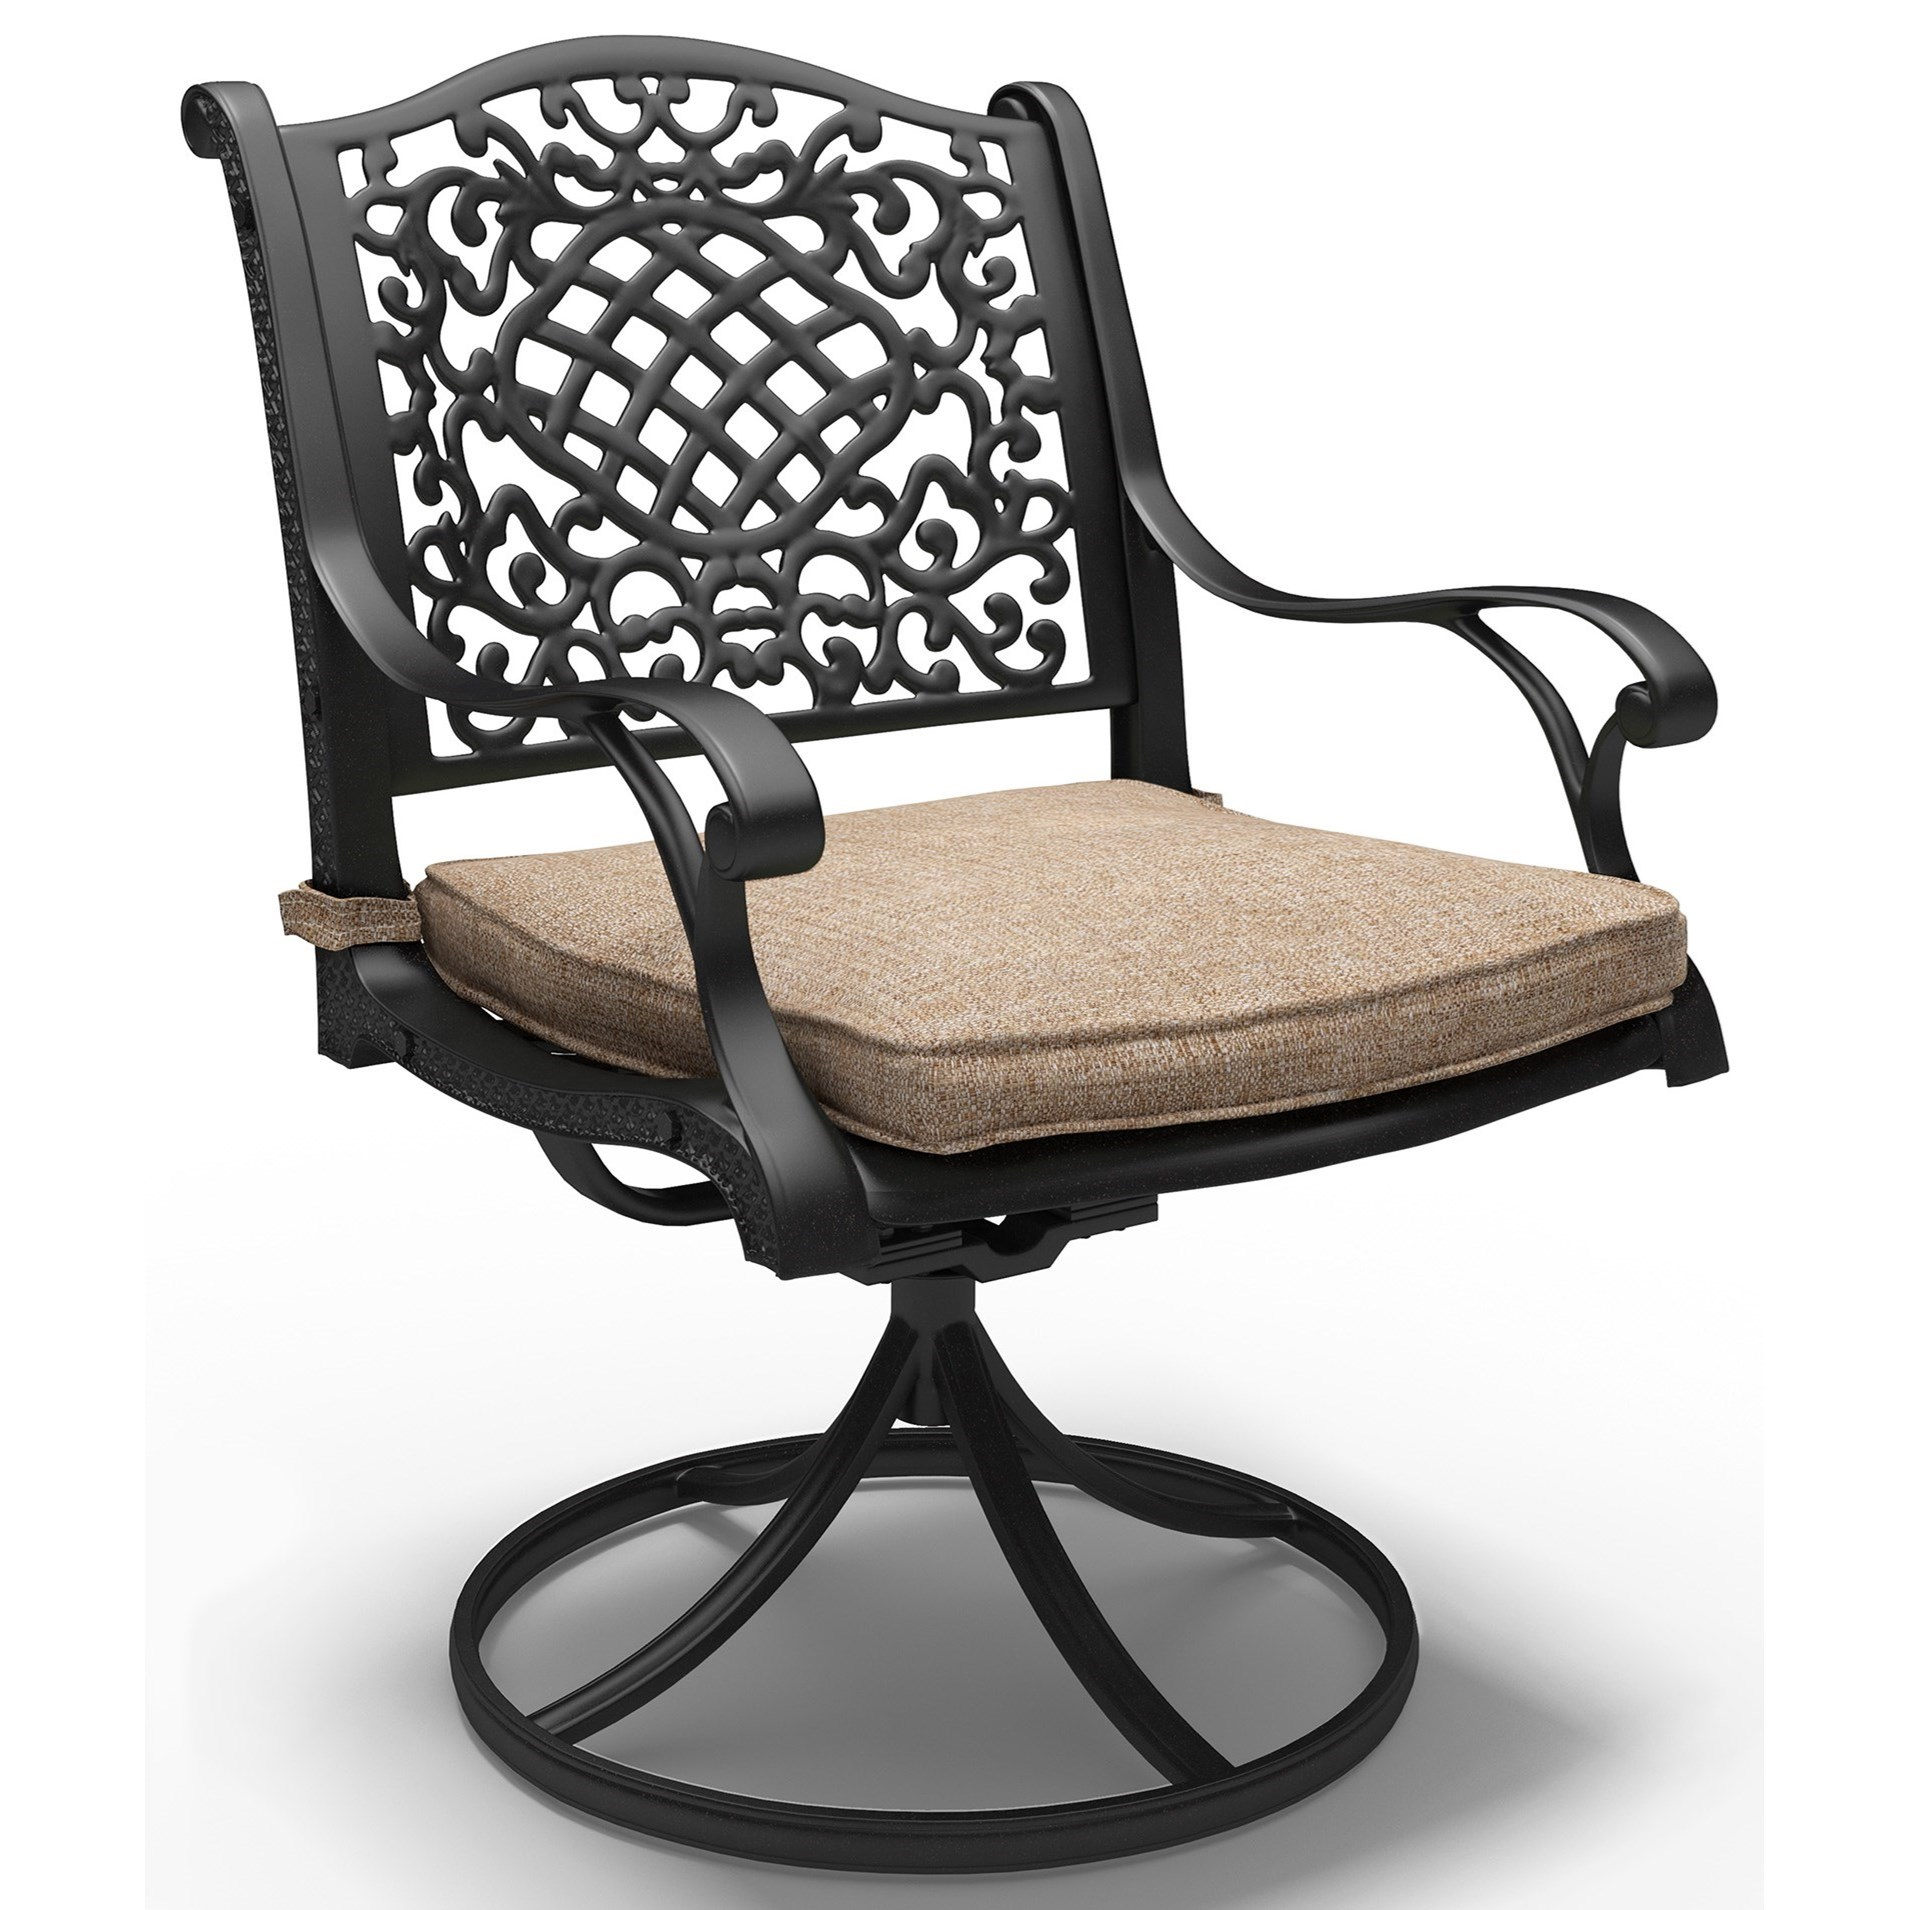 Signature Design by Ashley Rose View Set of 2 Swivel Chairs with Cushion - Item Number: P559-602A